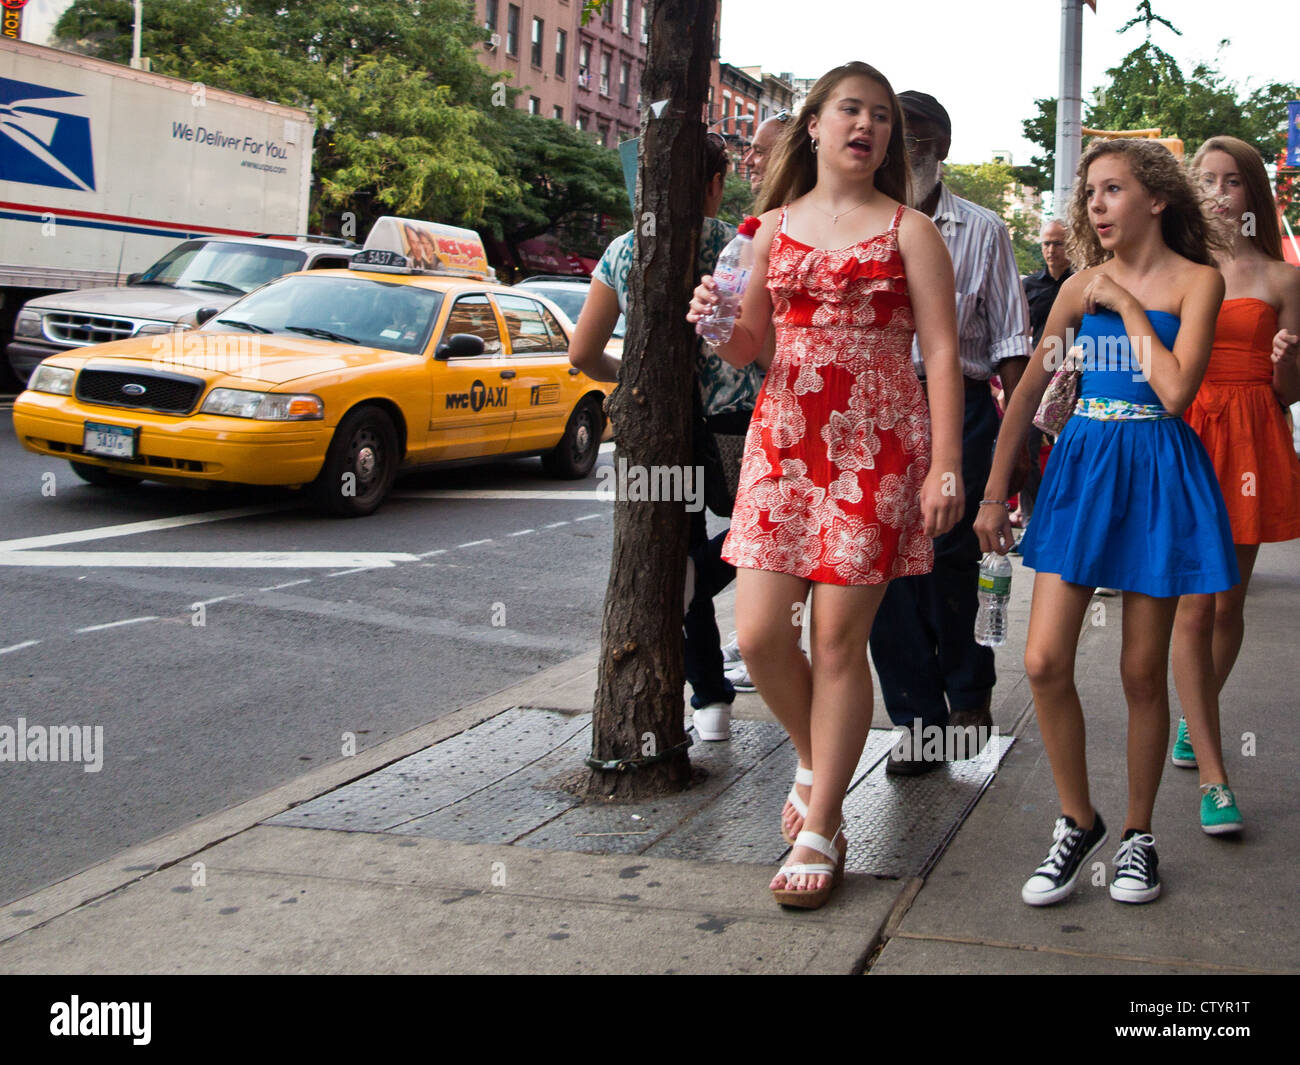 manhattan single girls New york post latest in living a survey by nyc's economic research and analysis group found that young single women in manhattan outnumber single men nearly 2.